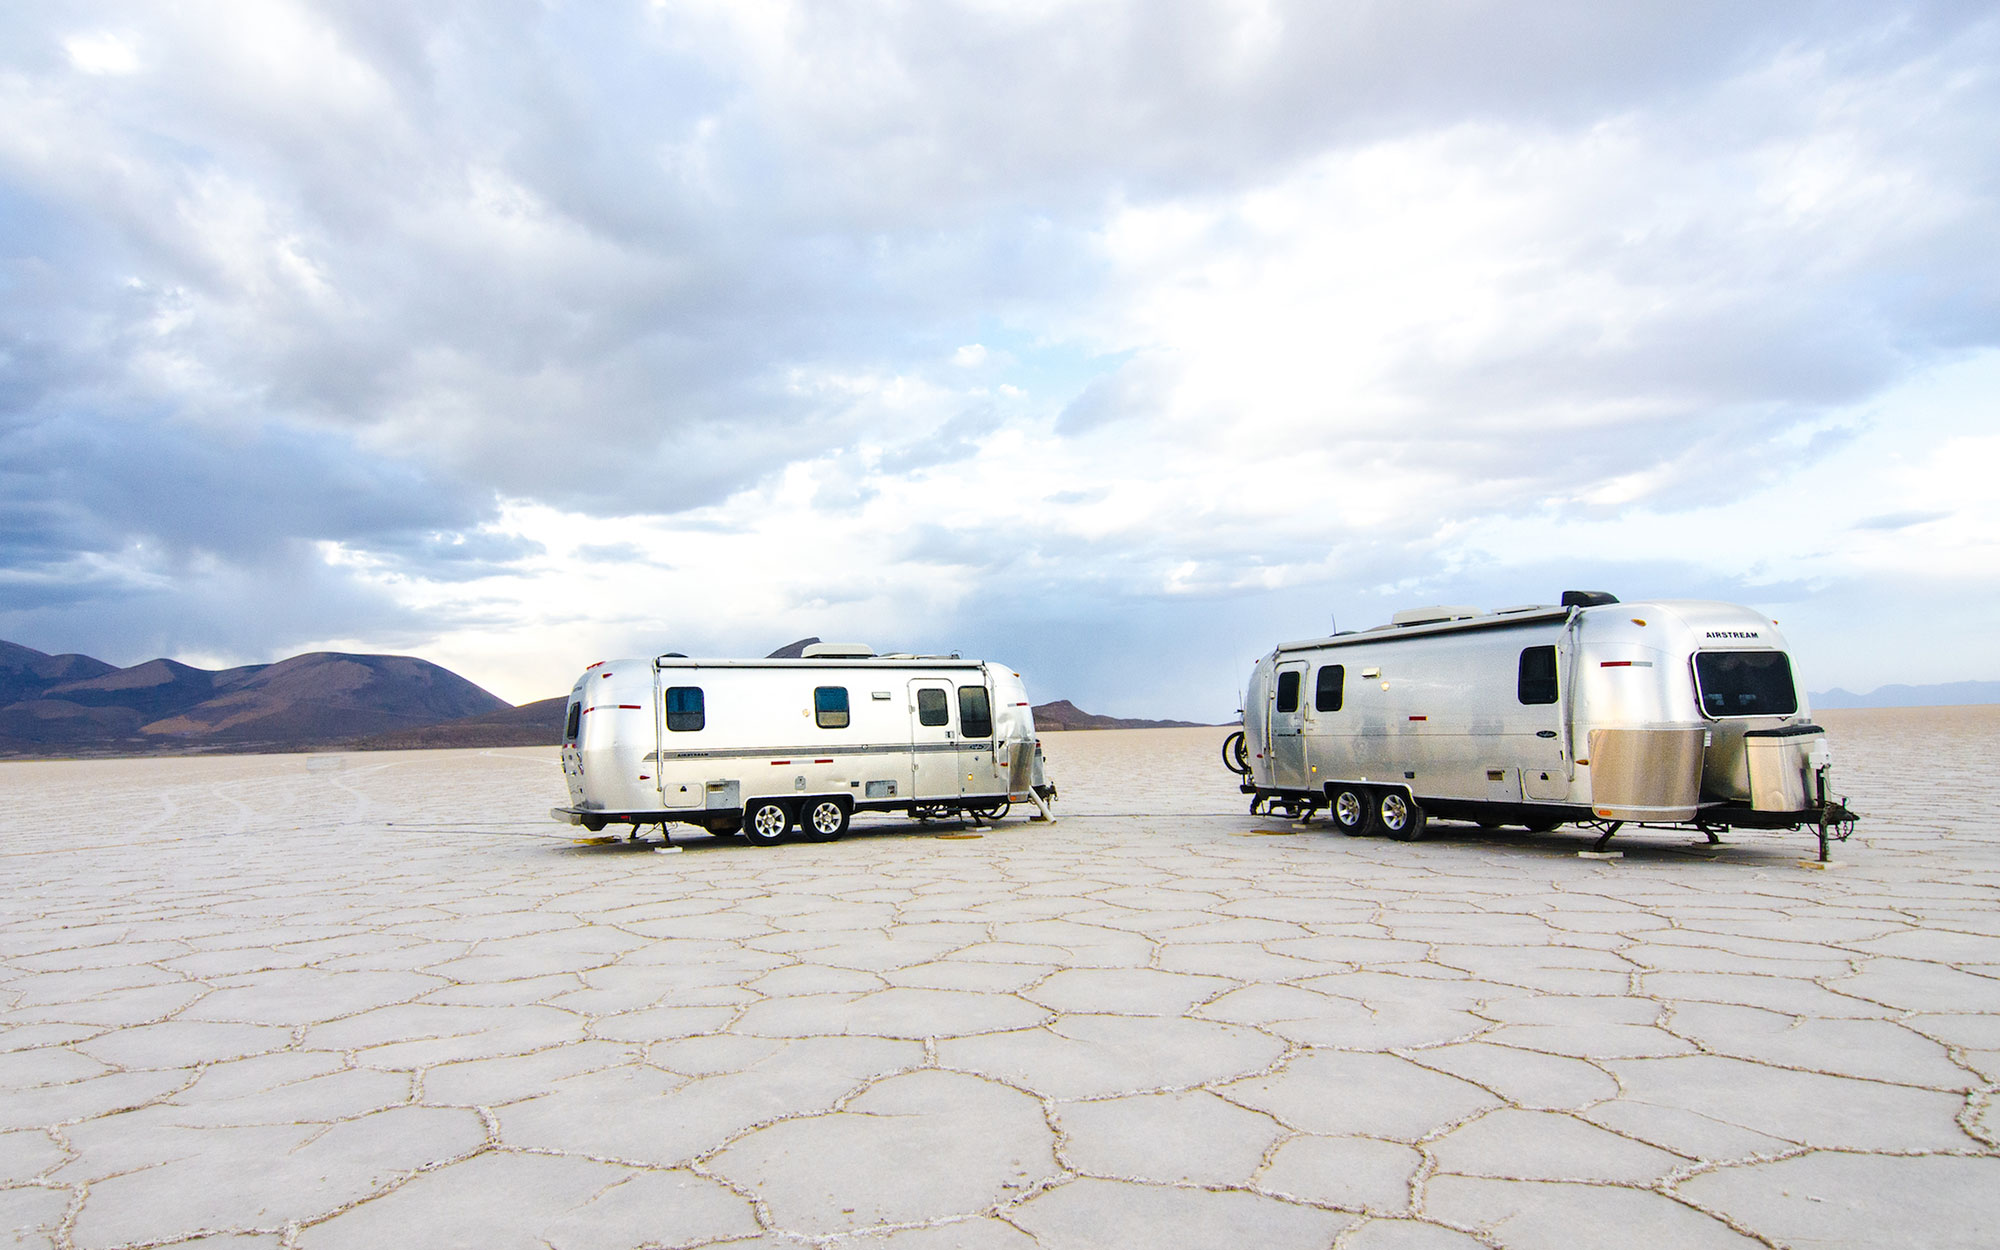 Camping on Bolivia's Salt Flats| Travel + Leisure